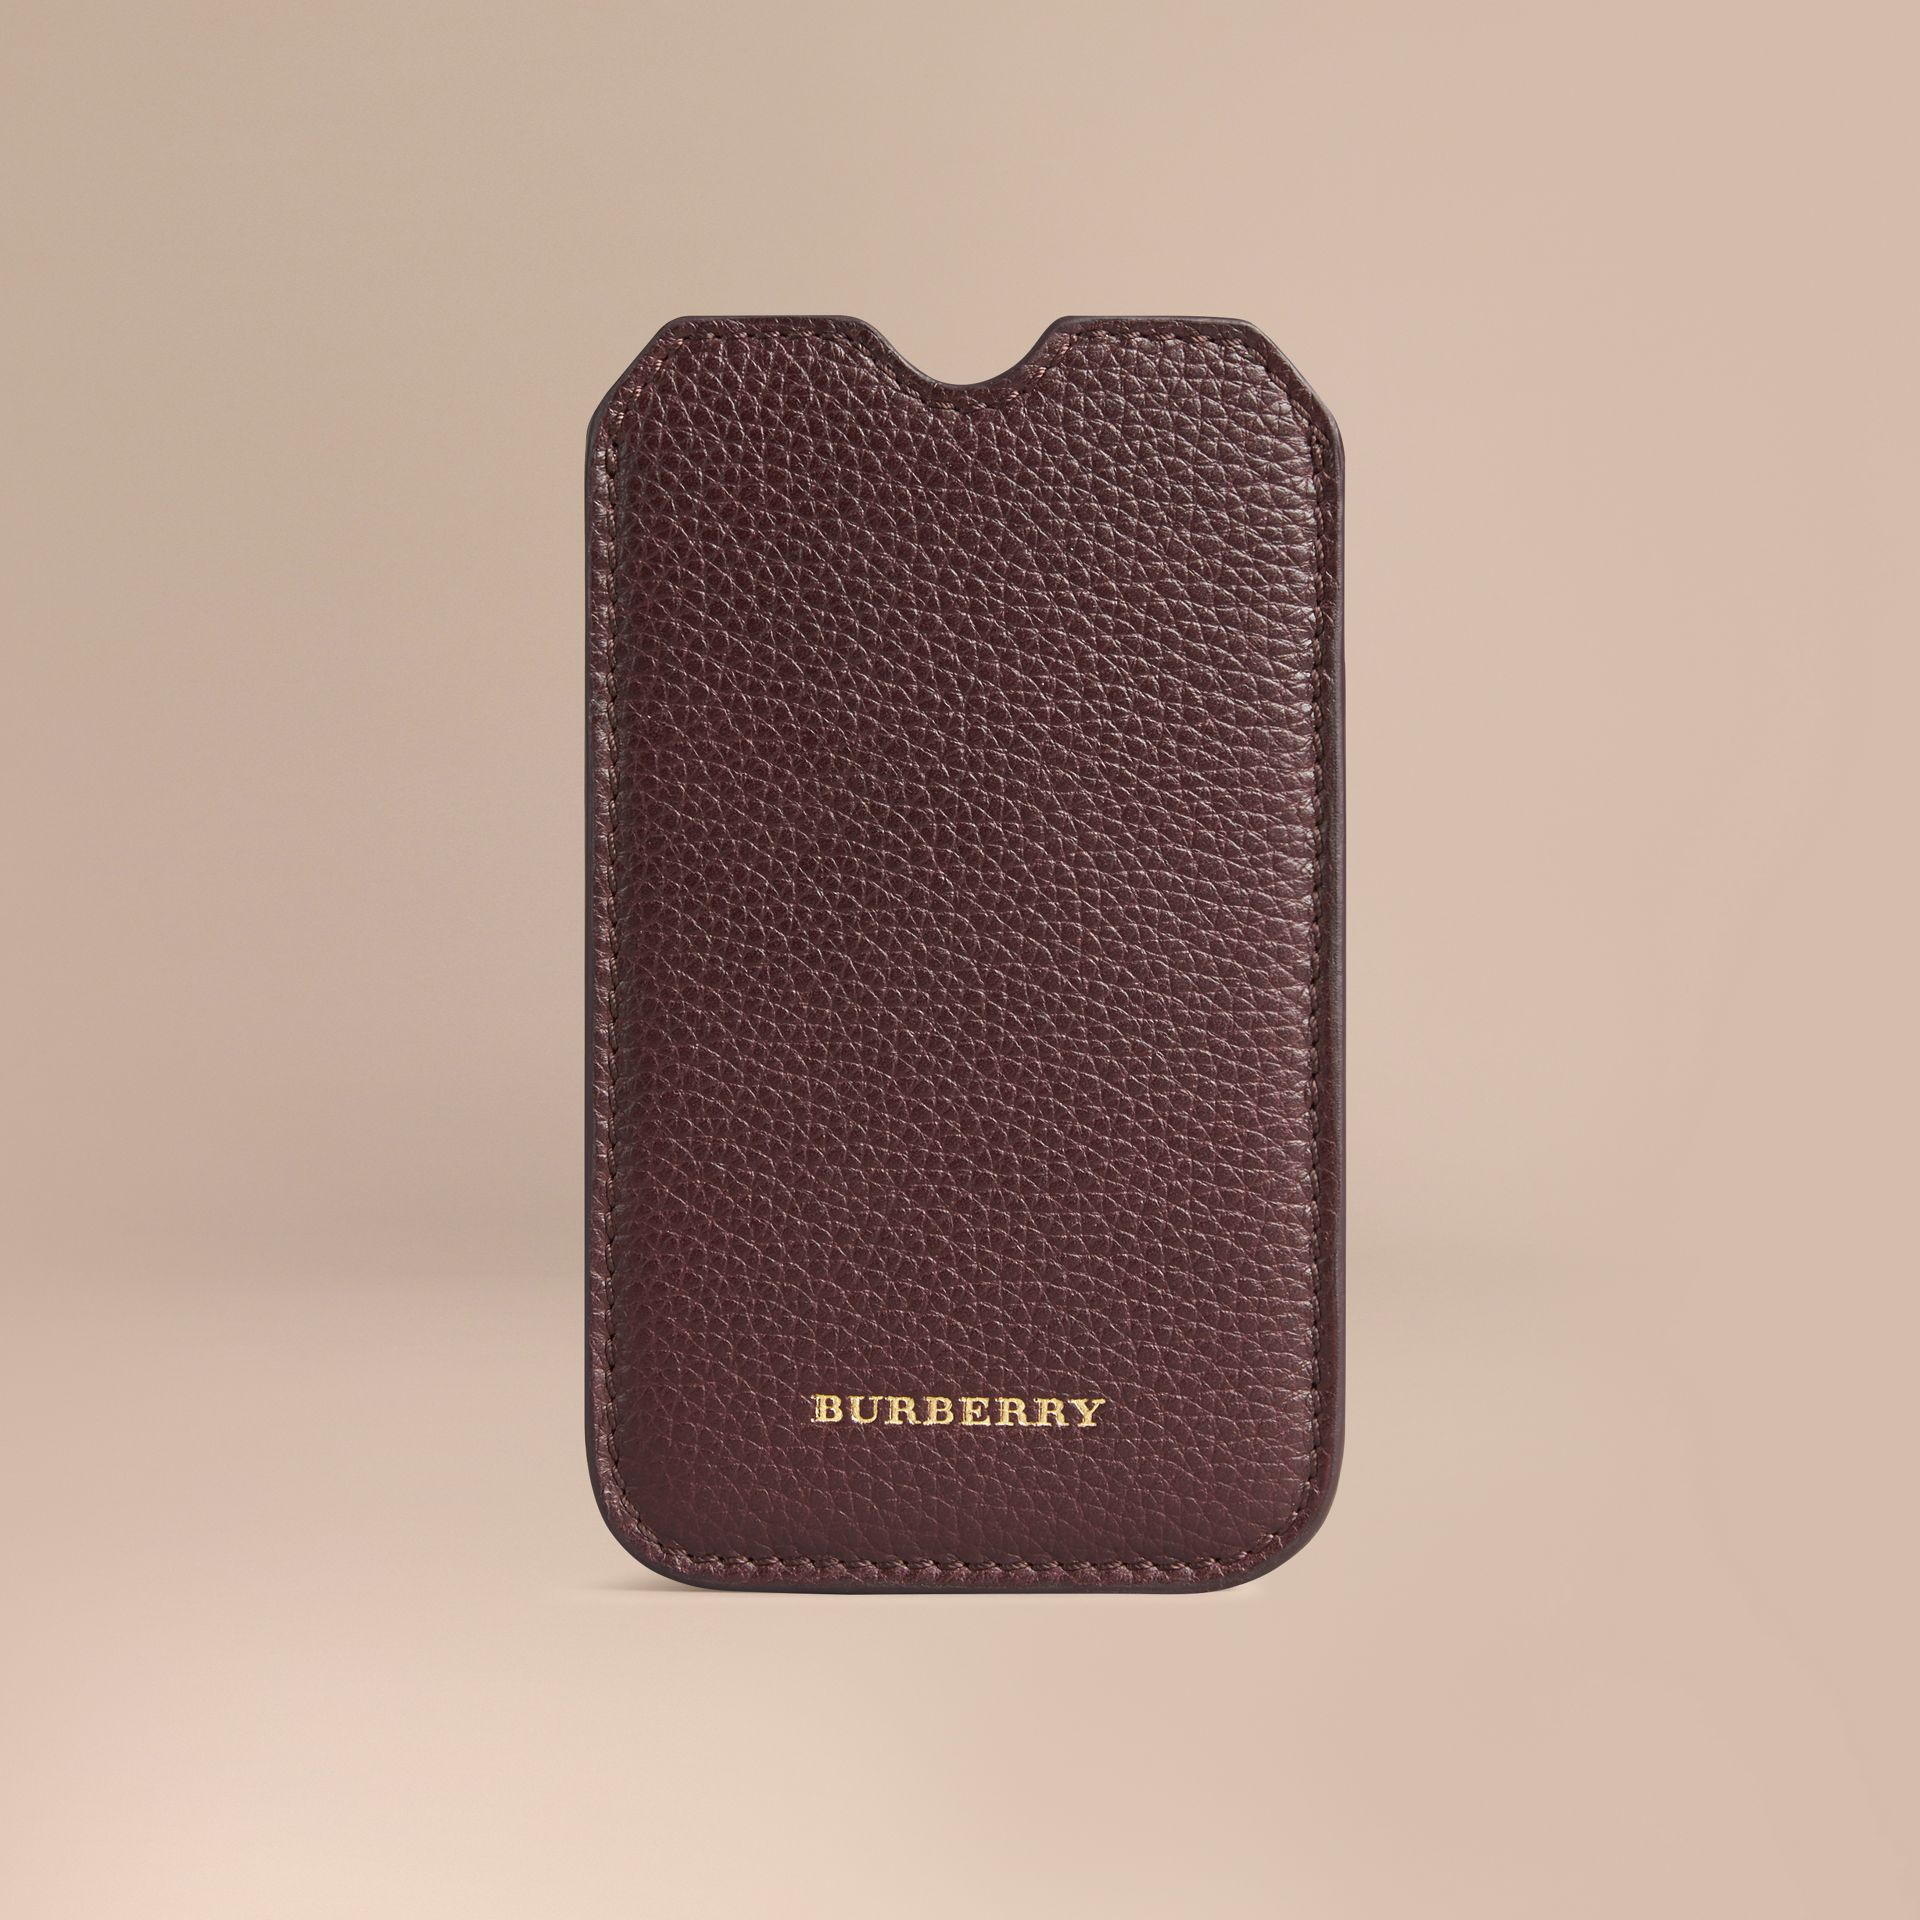 Étui pour iPhone 5/5S en cuir grainé (Ébène Rouge) | Burberry - photo de la galerie 1